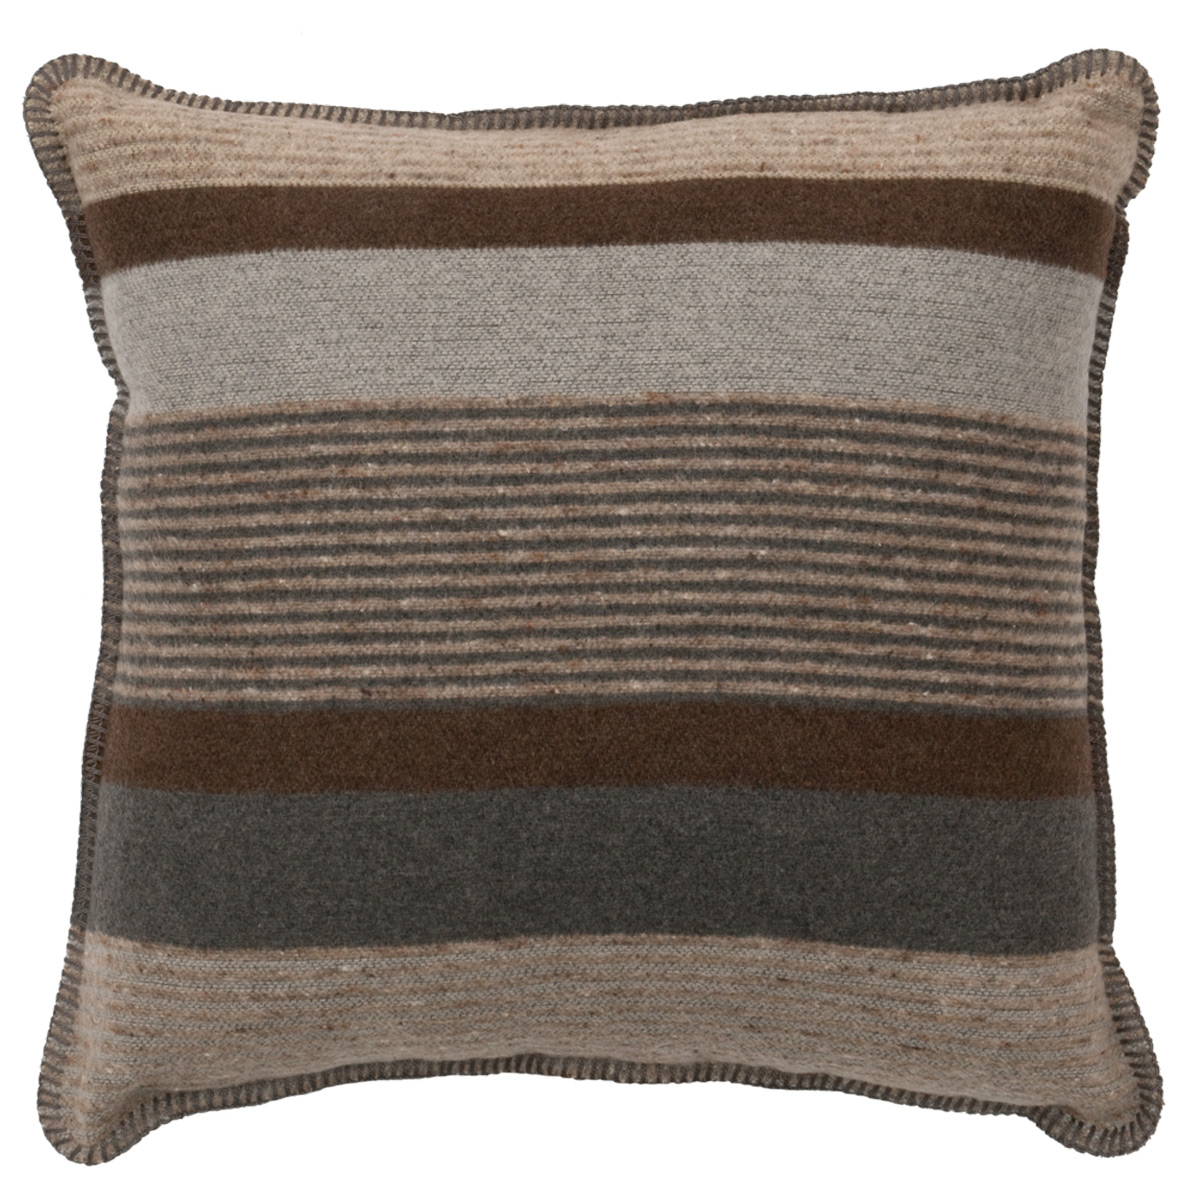 Sandstone Striped Pillow